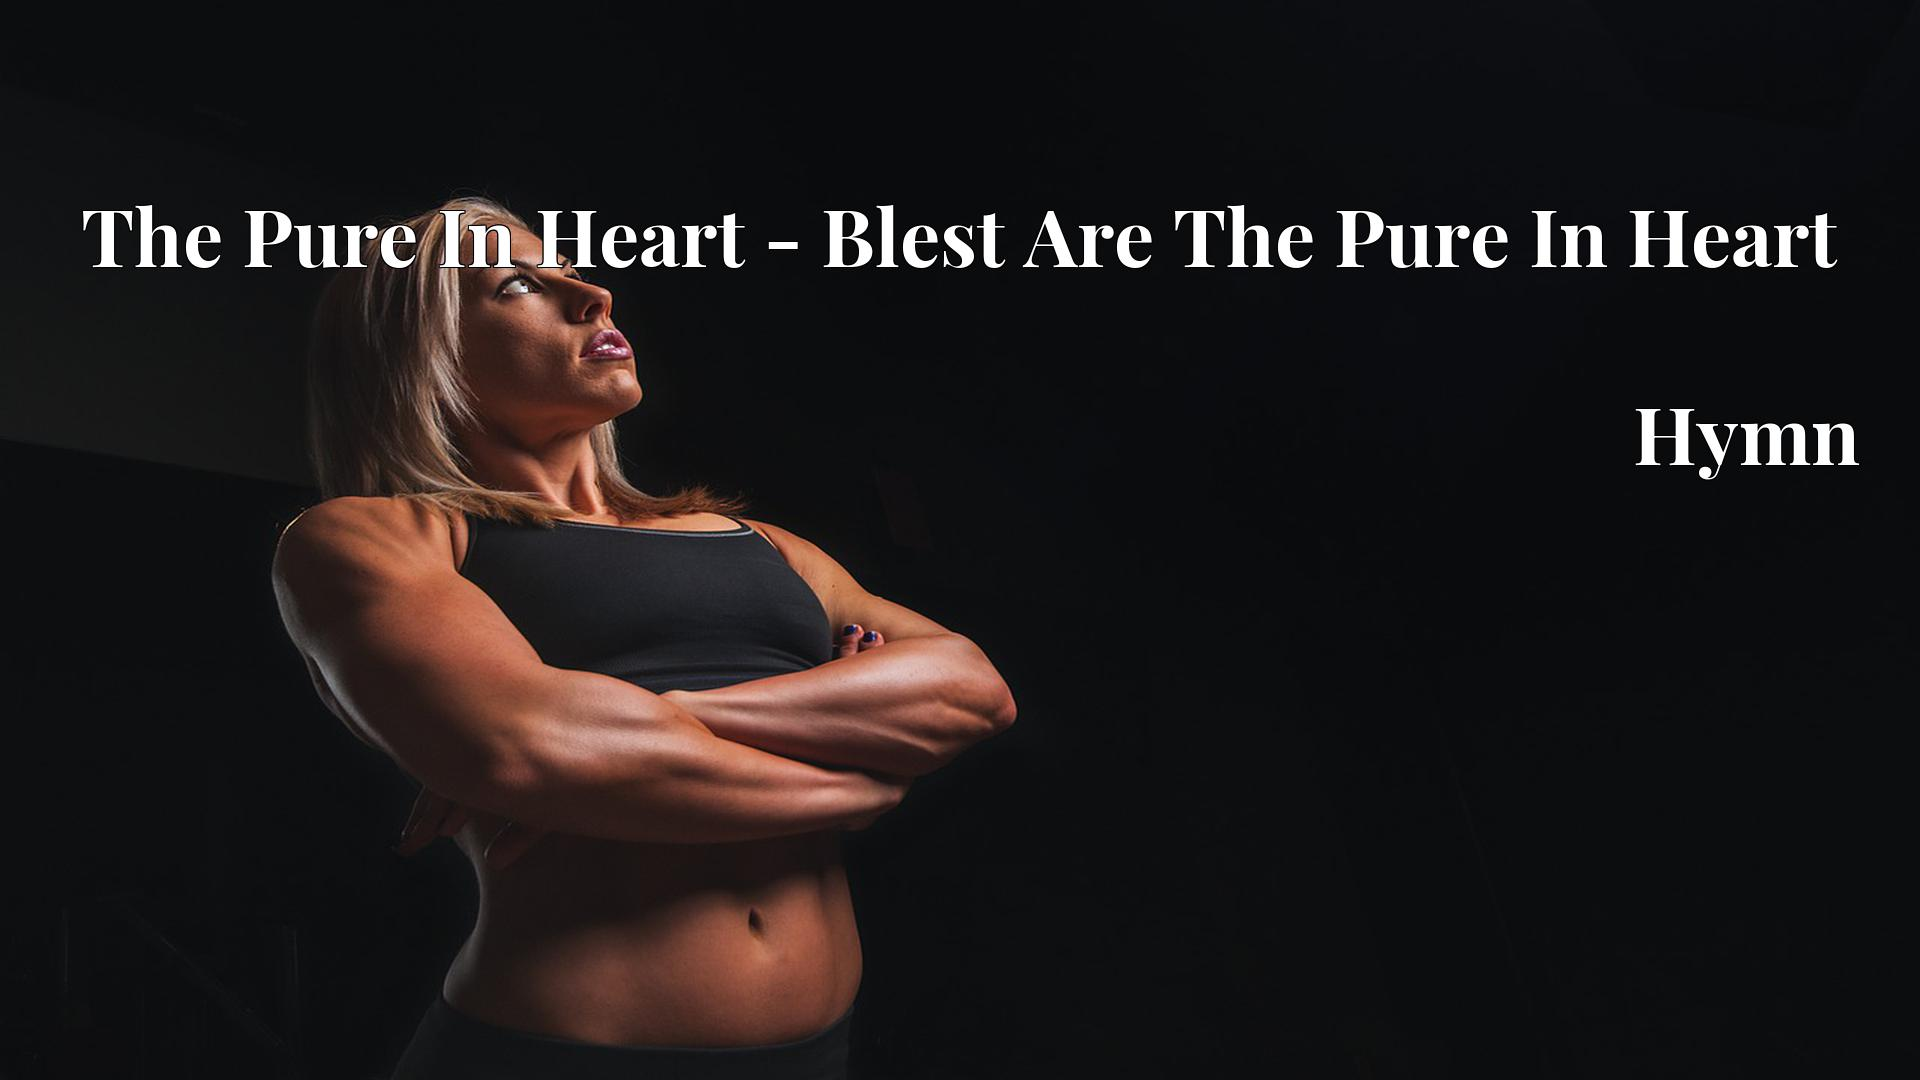 The Pure In Heart - Blest Are The Pure In Heart - Hymn